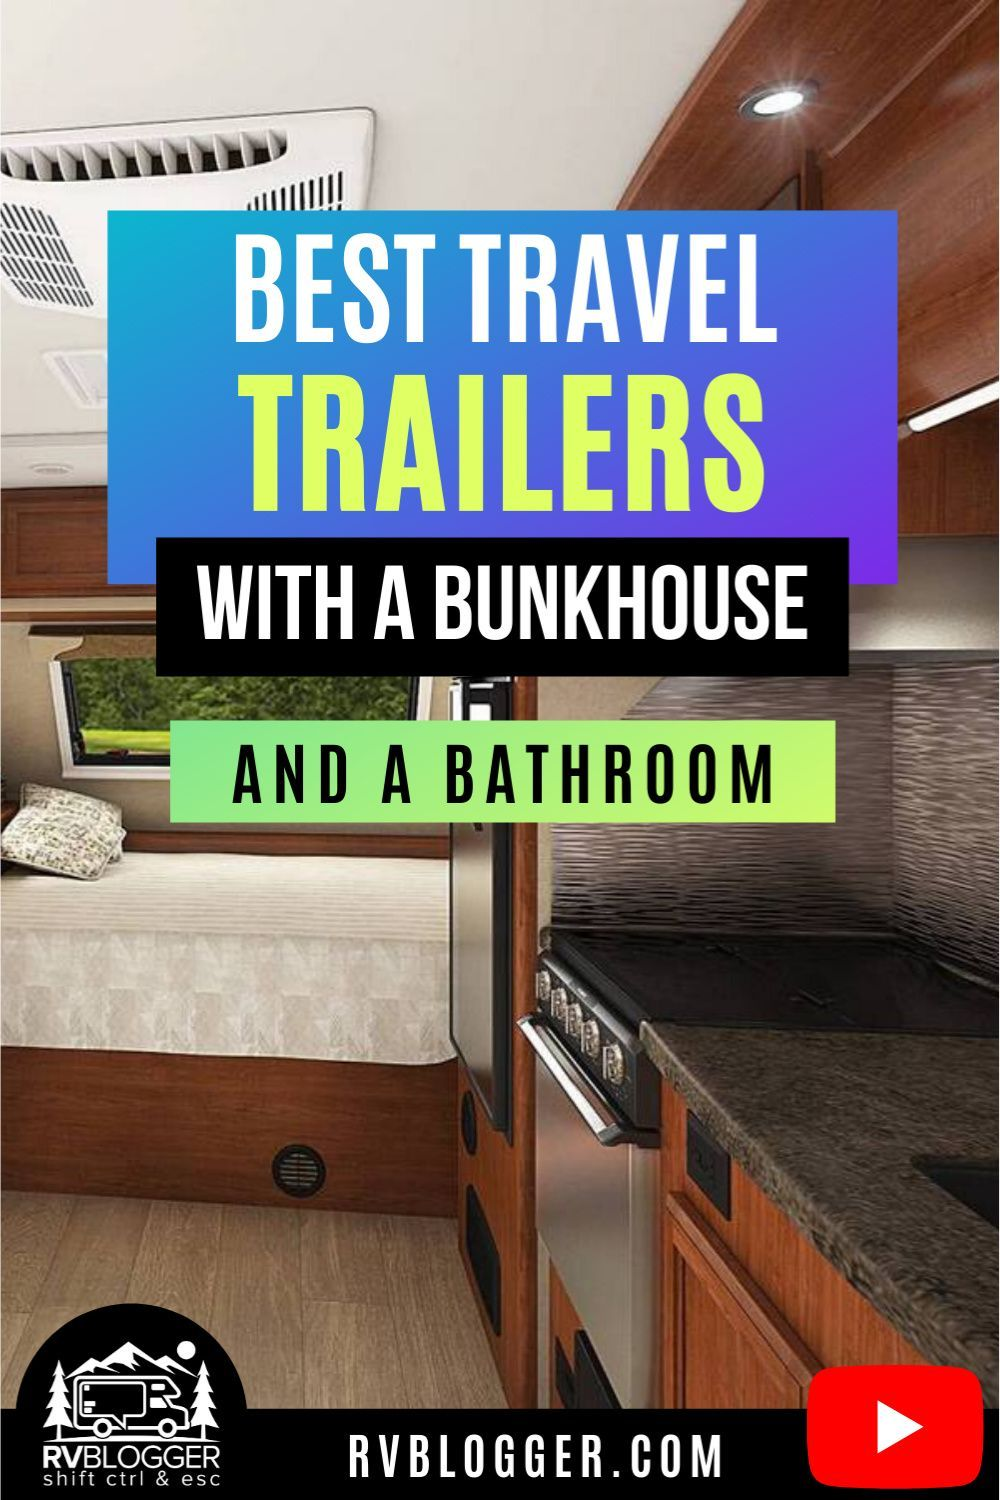 Best Travel Trailers With a Bunkhouse! in 2020 Travel